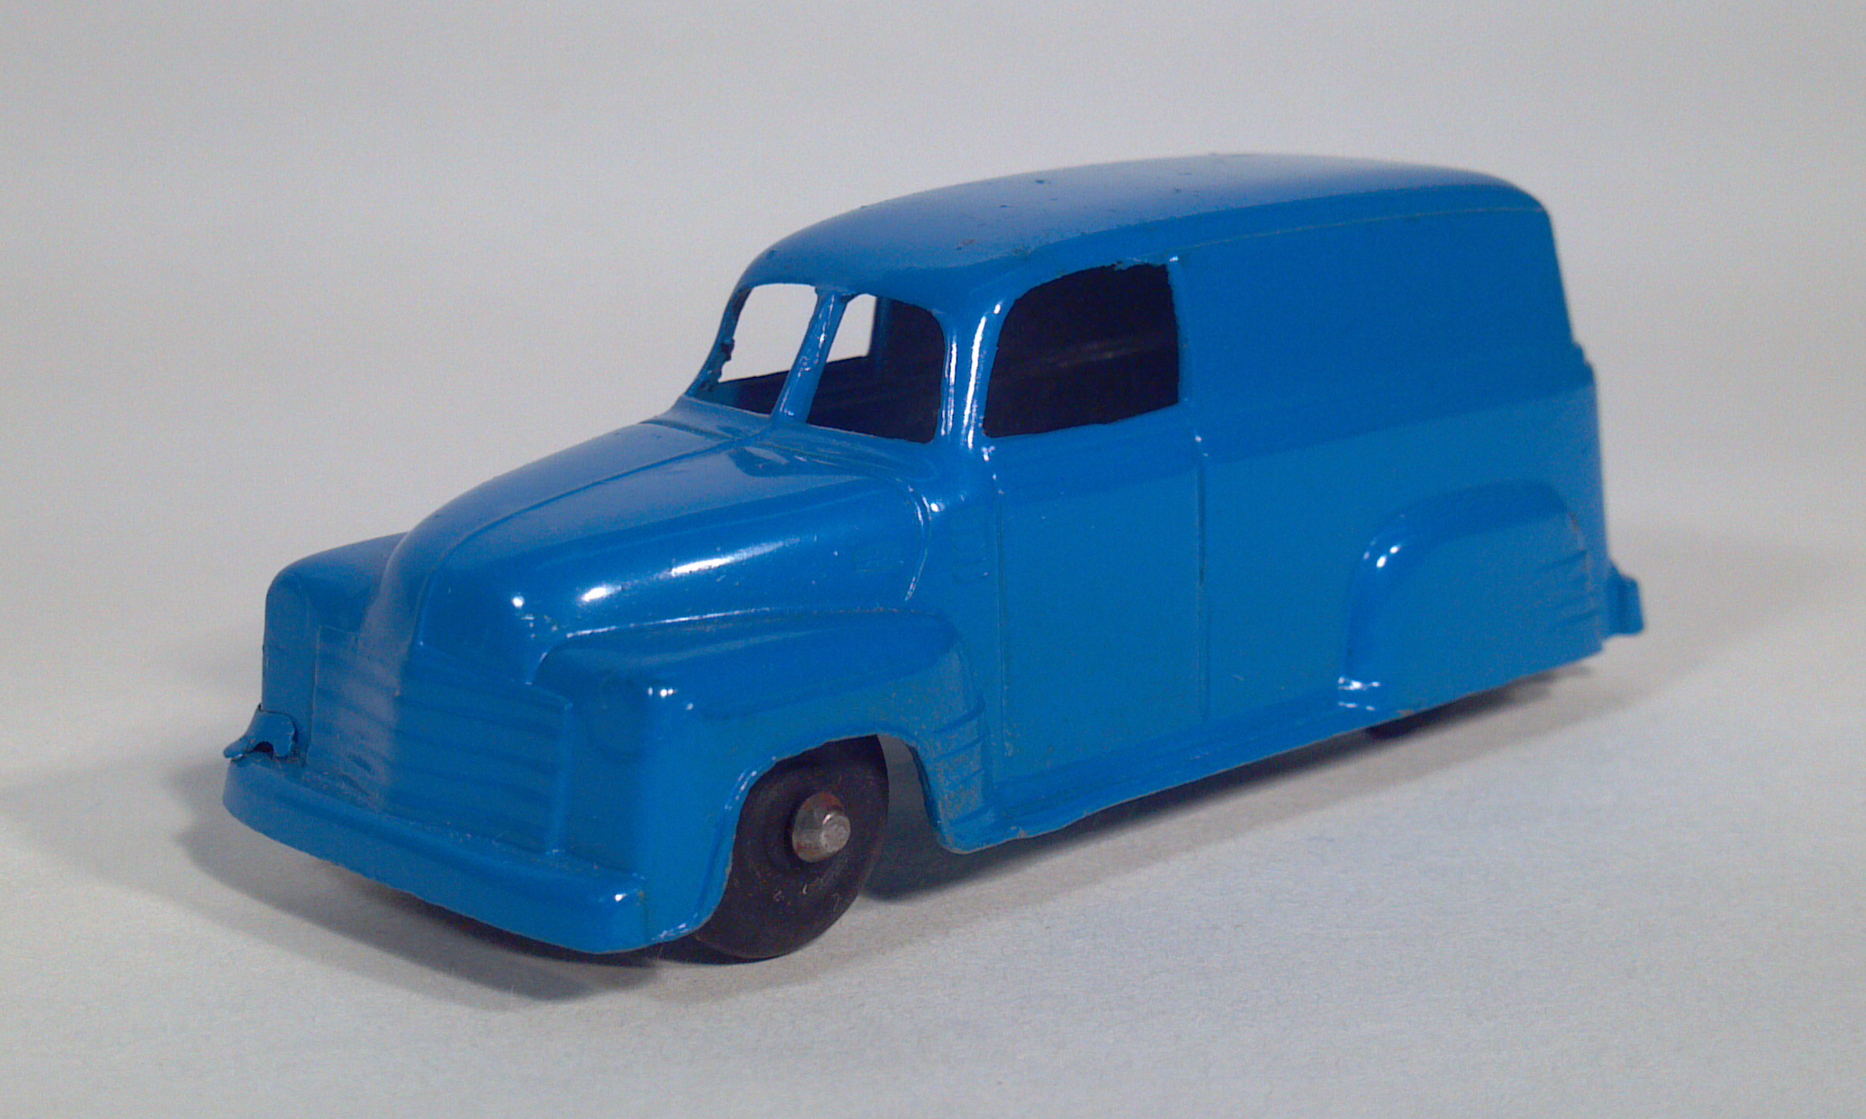 Post War Tootsietoy Diecast Toy Vehicles Scale Models Cars Trucks 1948 Ford Panel Truck Missing